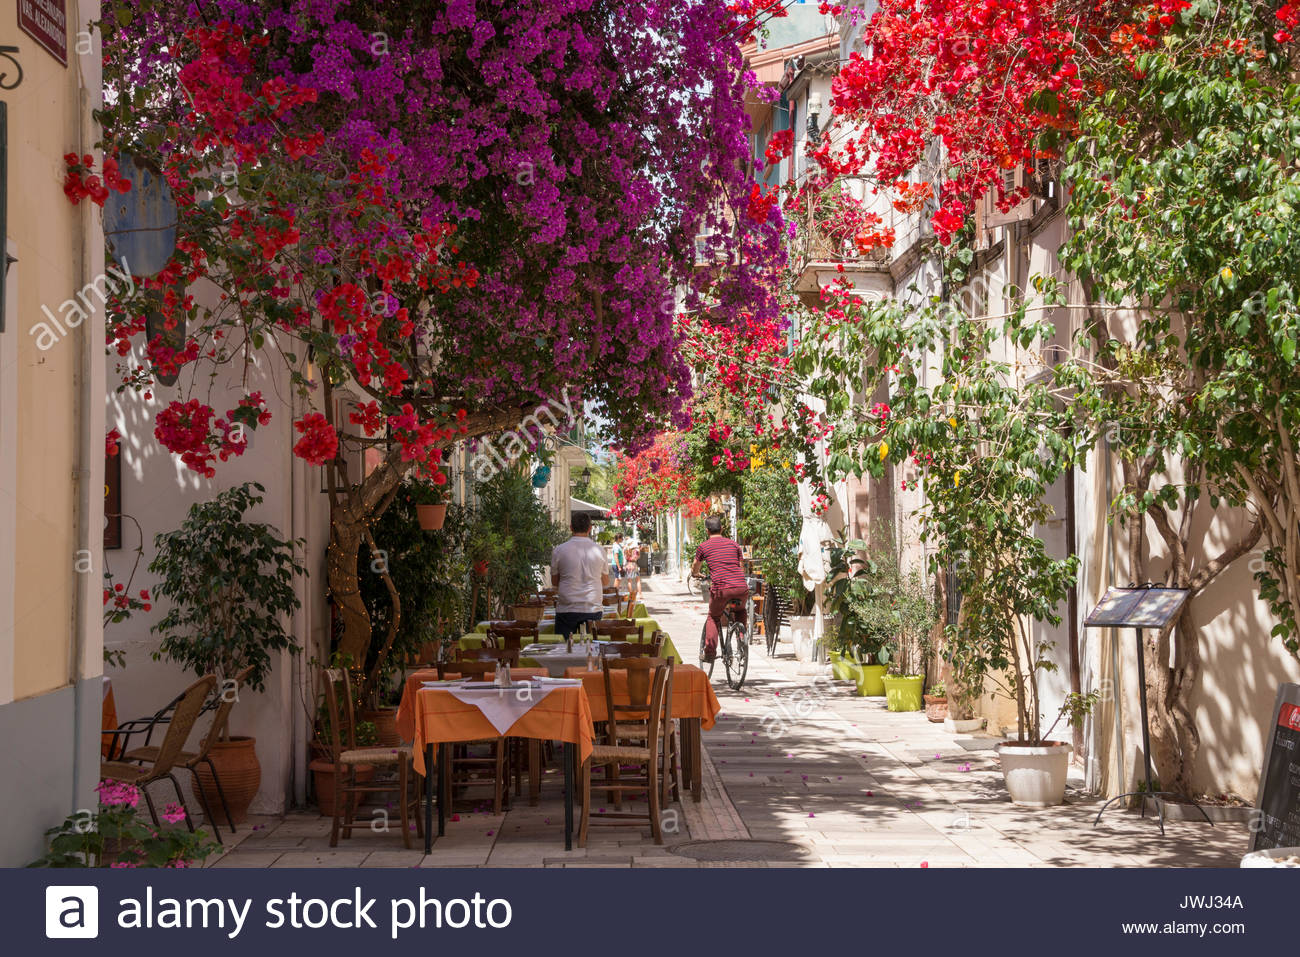 street-in-nafplio-with-outdoor-restaurants-JWJ34A.jpg